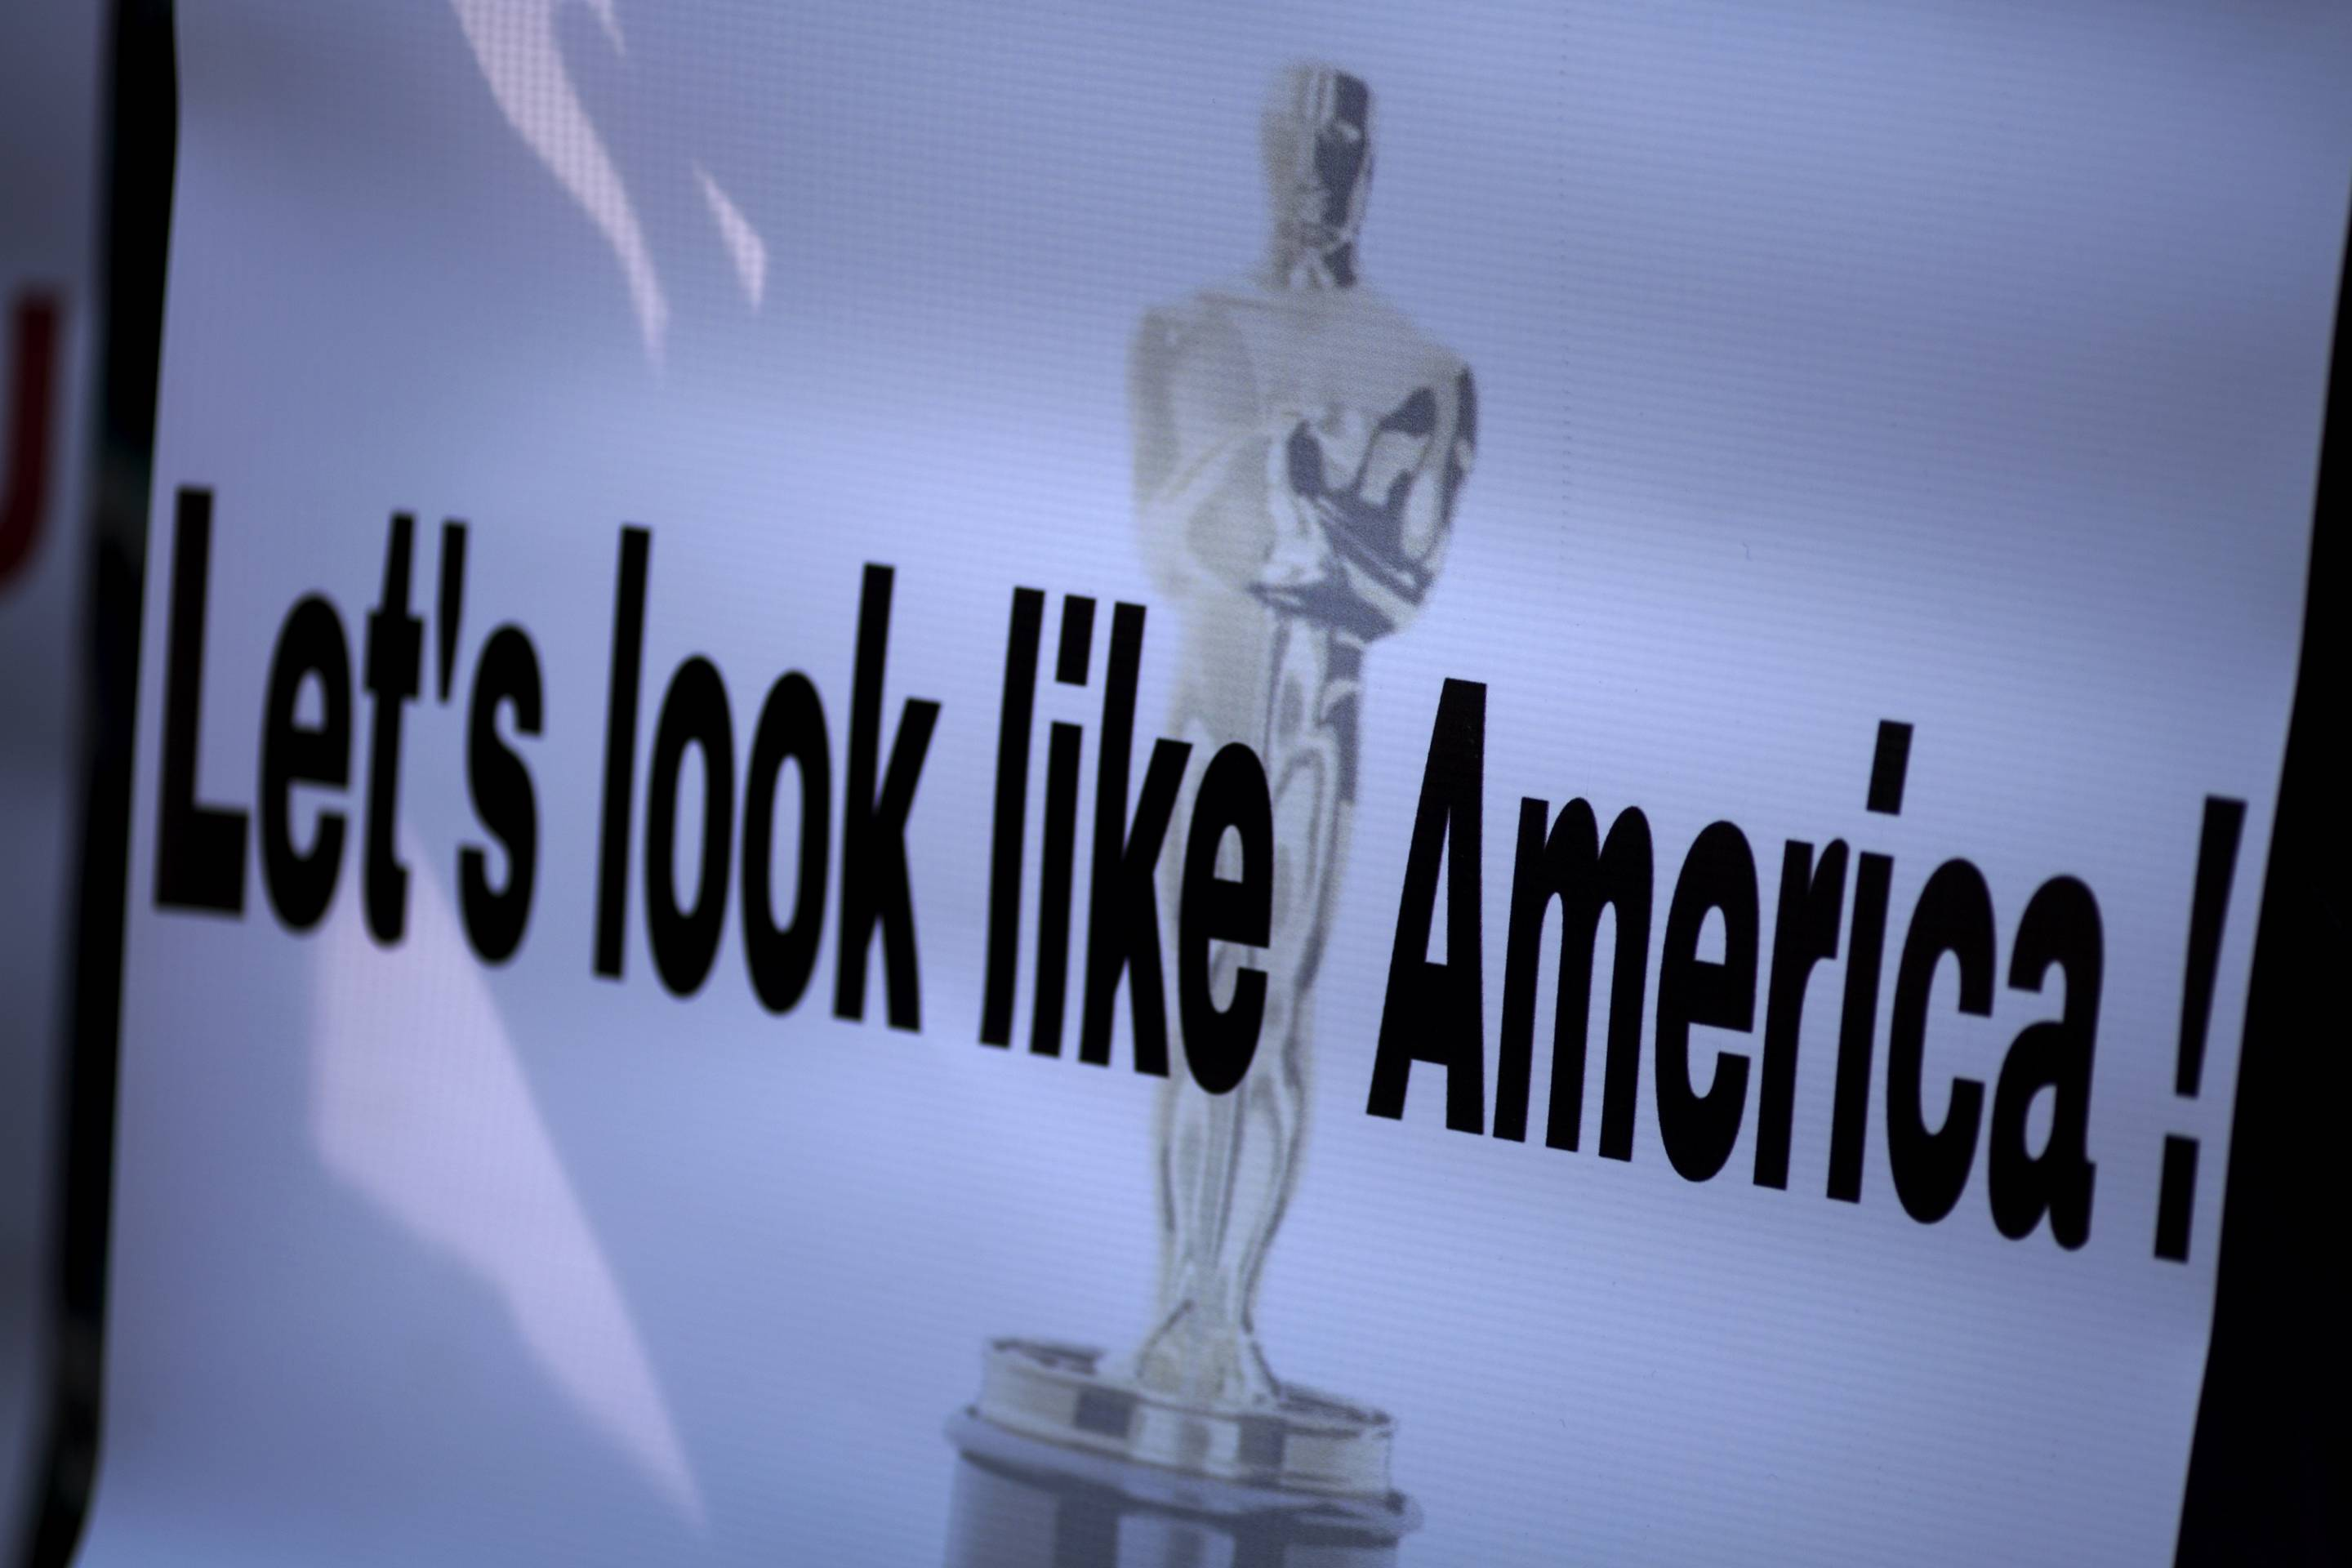 US-OSCAR-PROTEST-politics